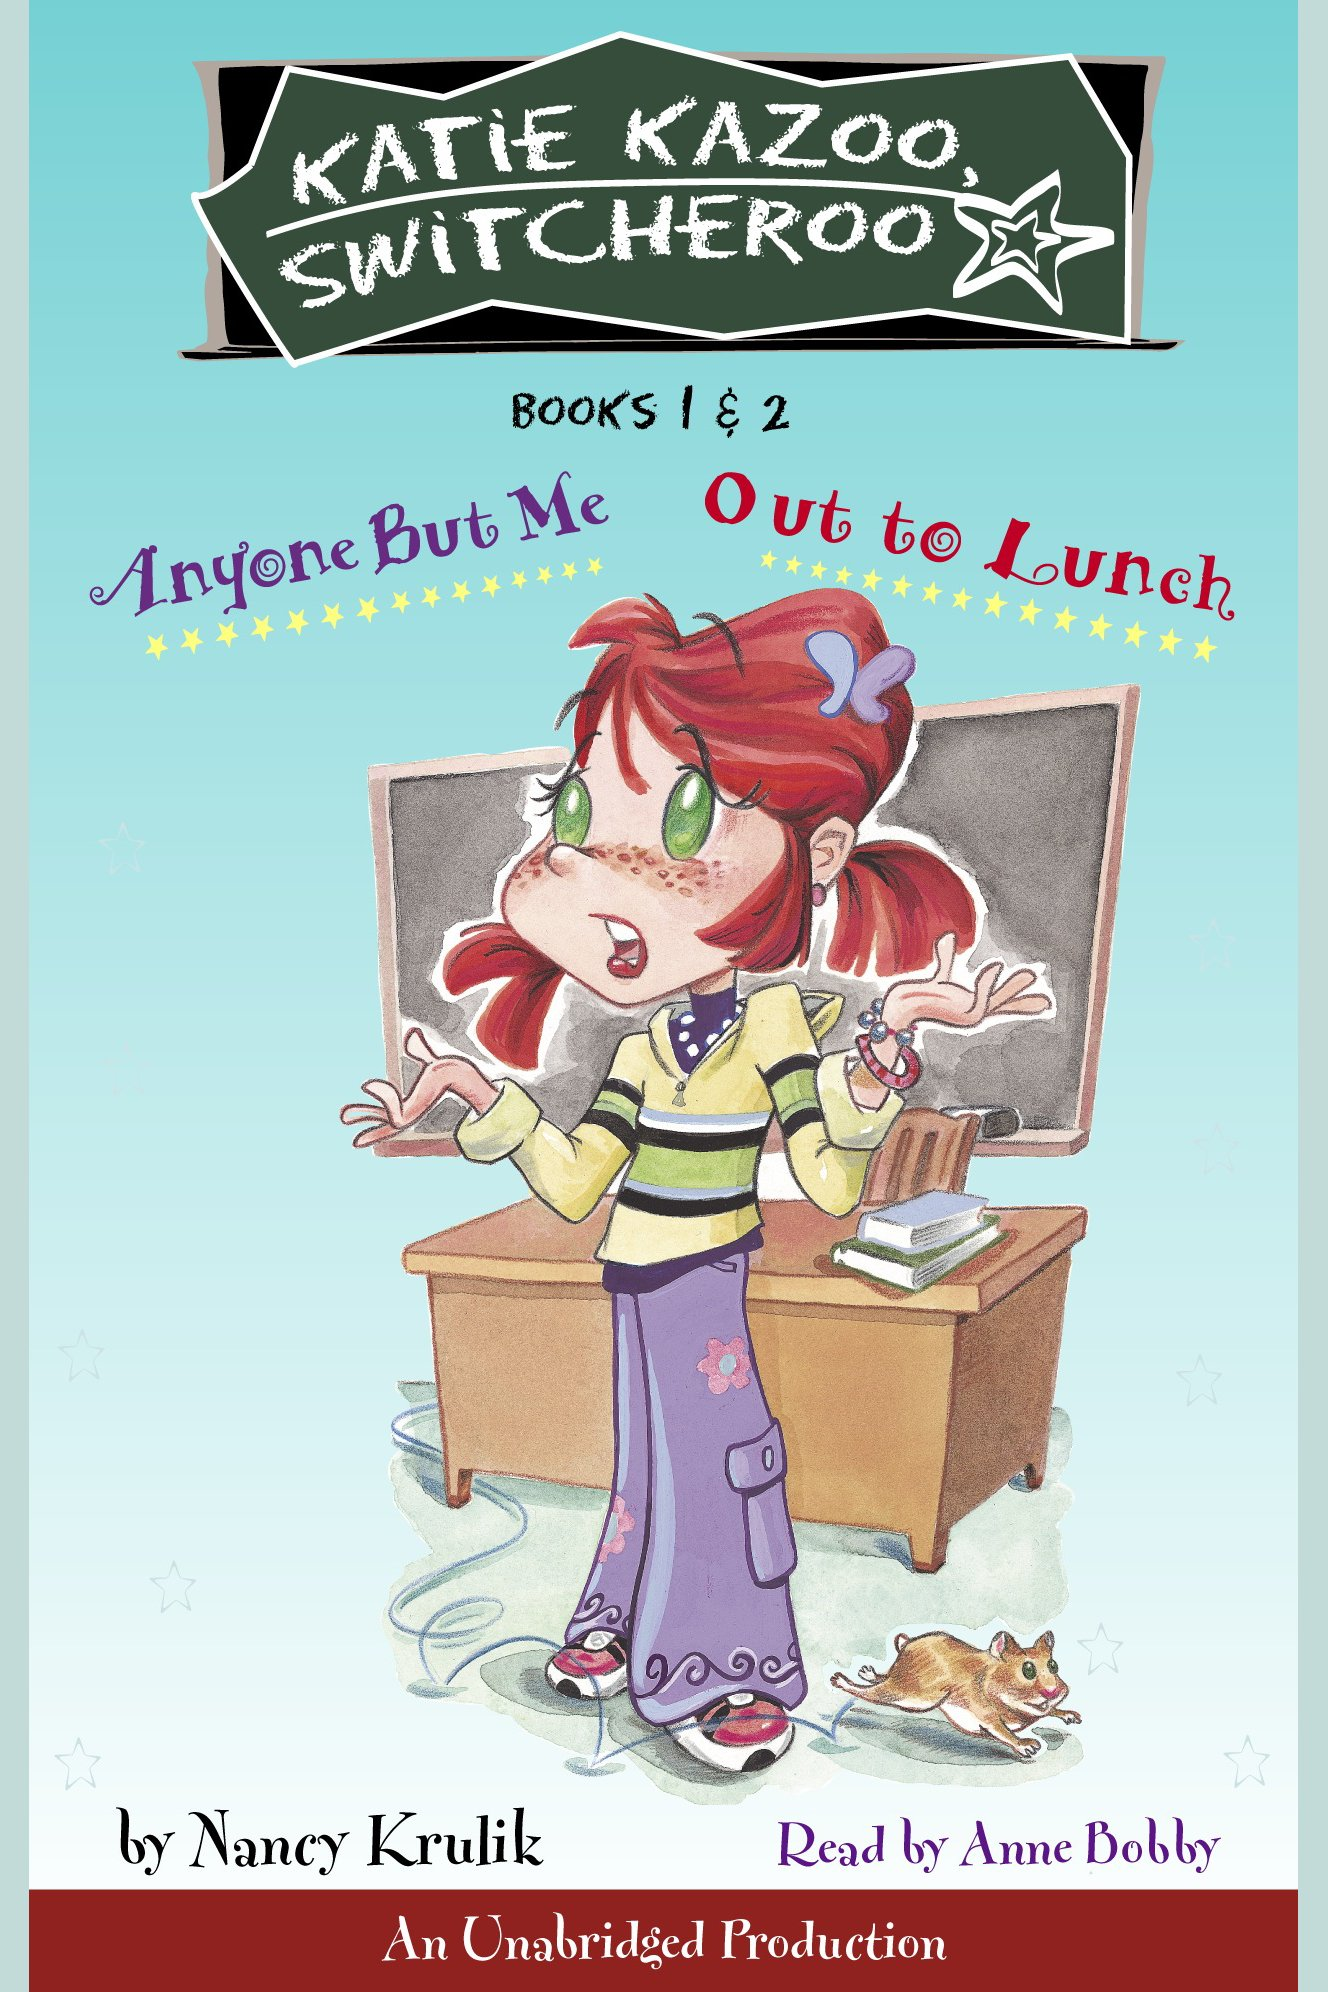 Anyone But Me Out to lunch cover image